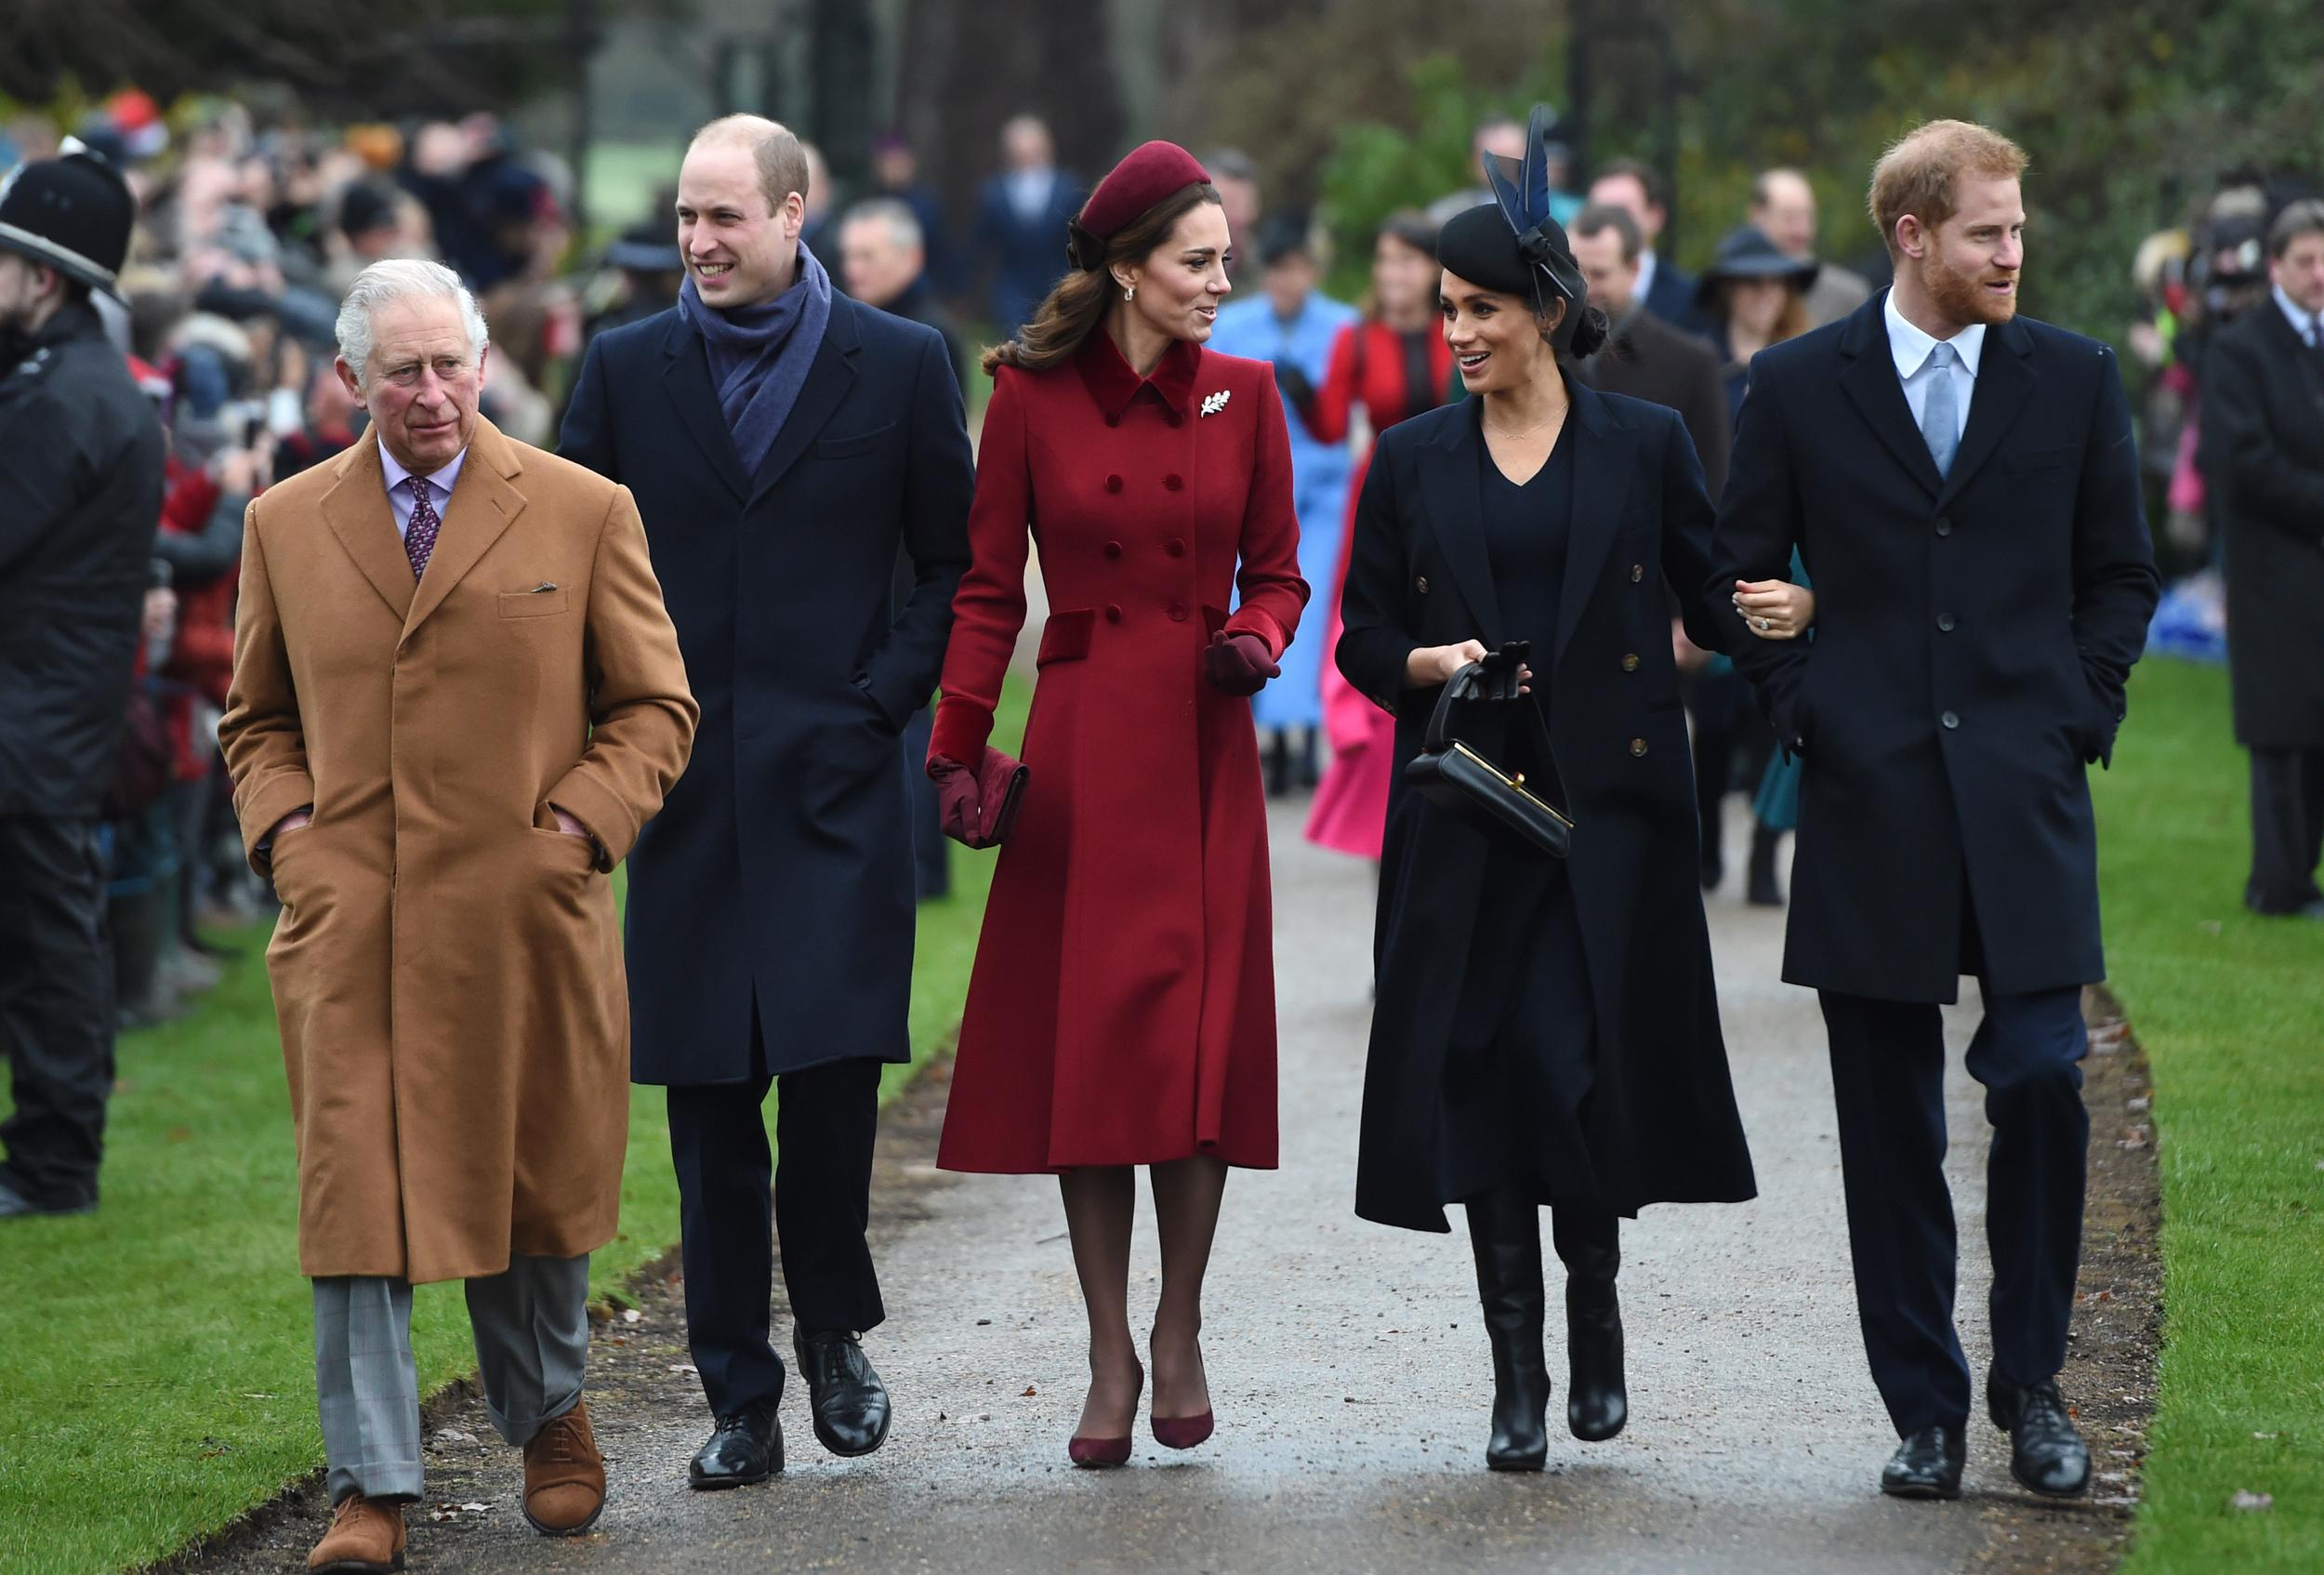 The Prince of Wales, the Duke of Cambridge, the Duchess of Cambridge, the Duchess of Sussex and the Duke of Sussex arriving to attend the Christmas Day morning church service at St Mary Magdalene Church in Sandringham, Norfolk.